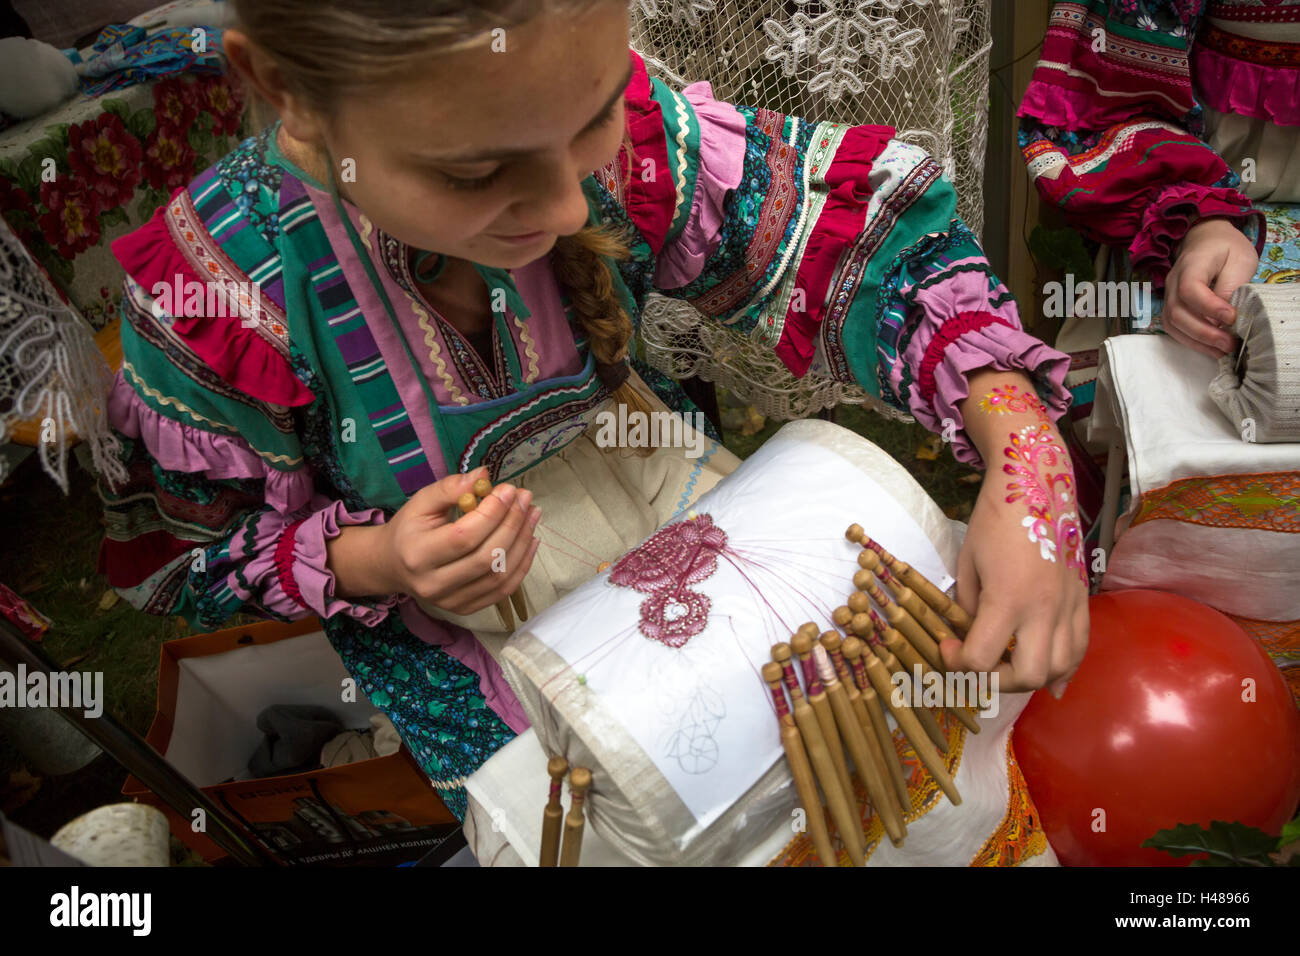 Skilled girl waving the traditional bobbin lace in Vladimir town, Russia - Stock Image